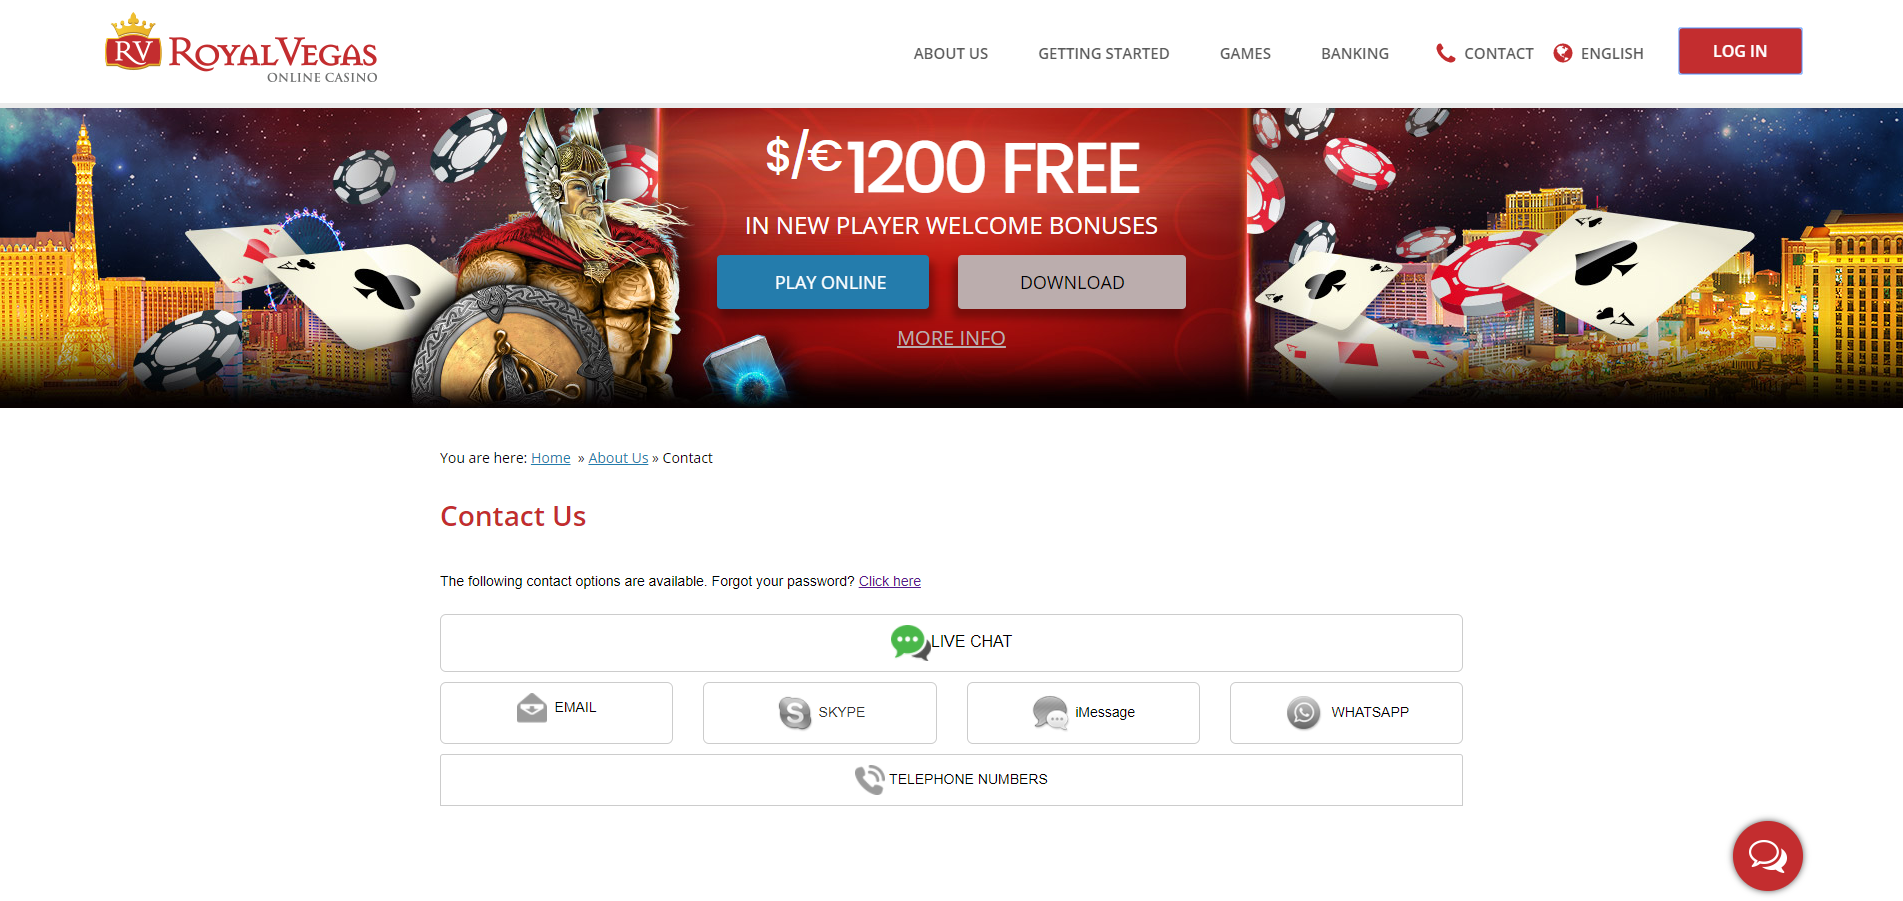 24Bettle Casino Online Review With Promotions & Bonuses